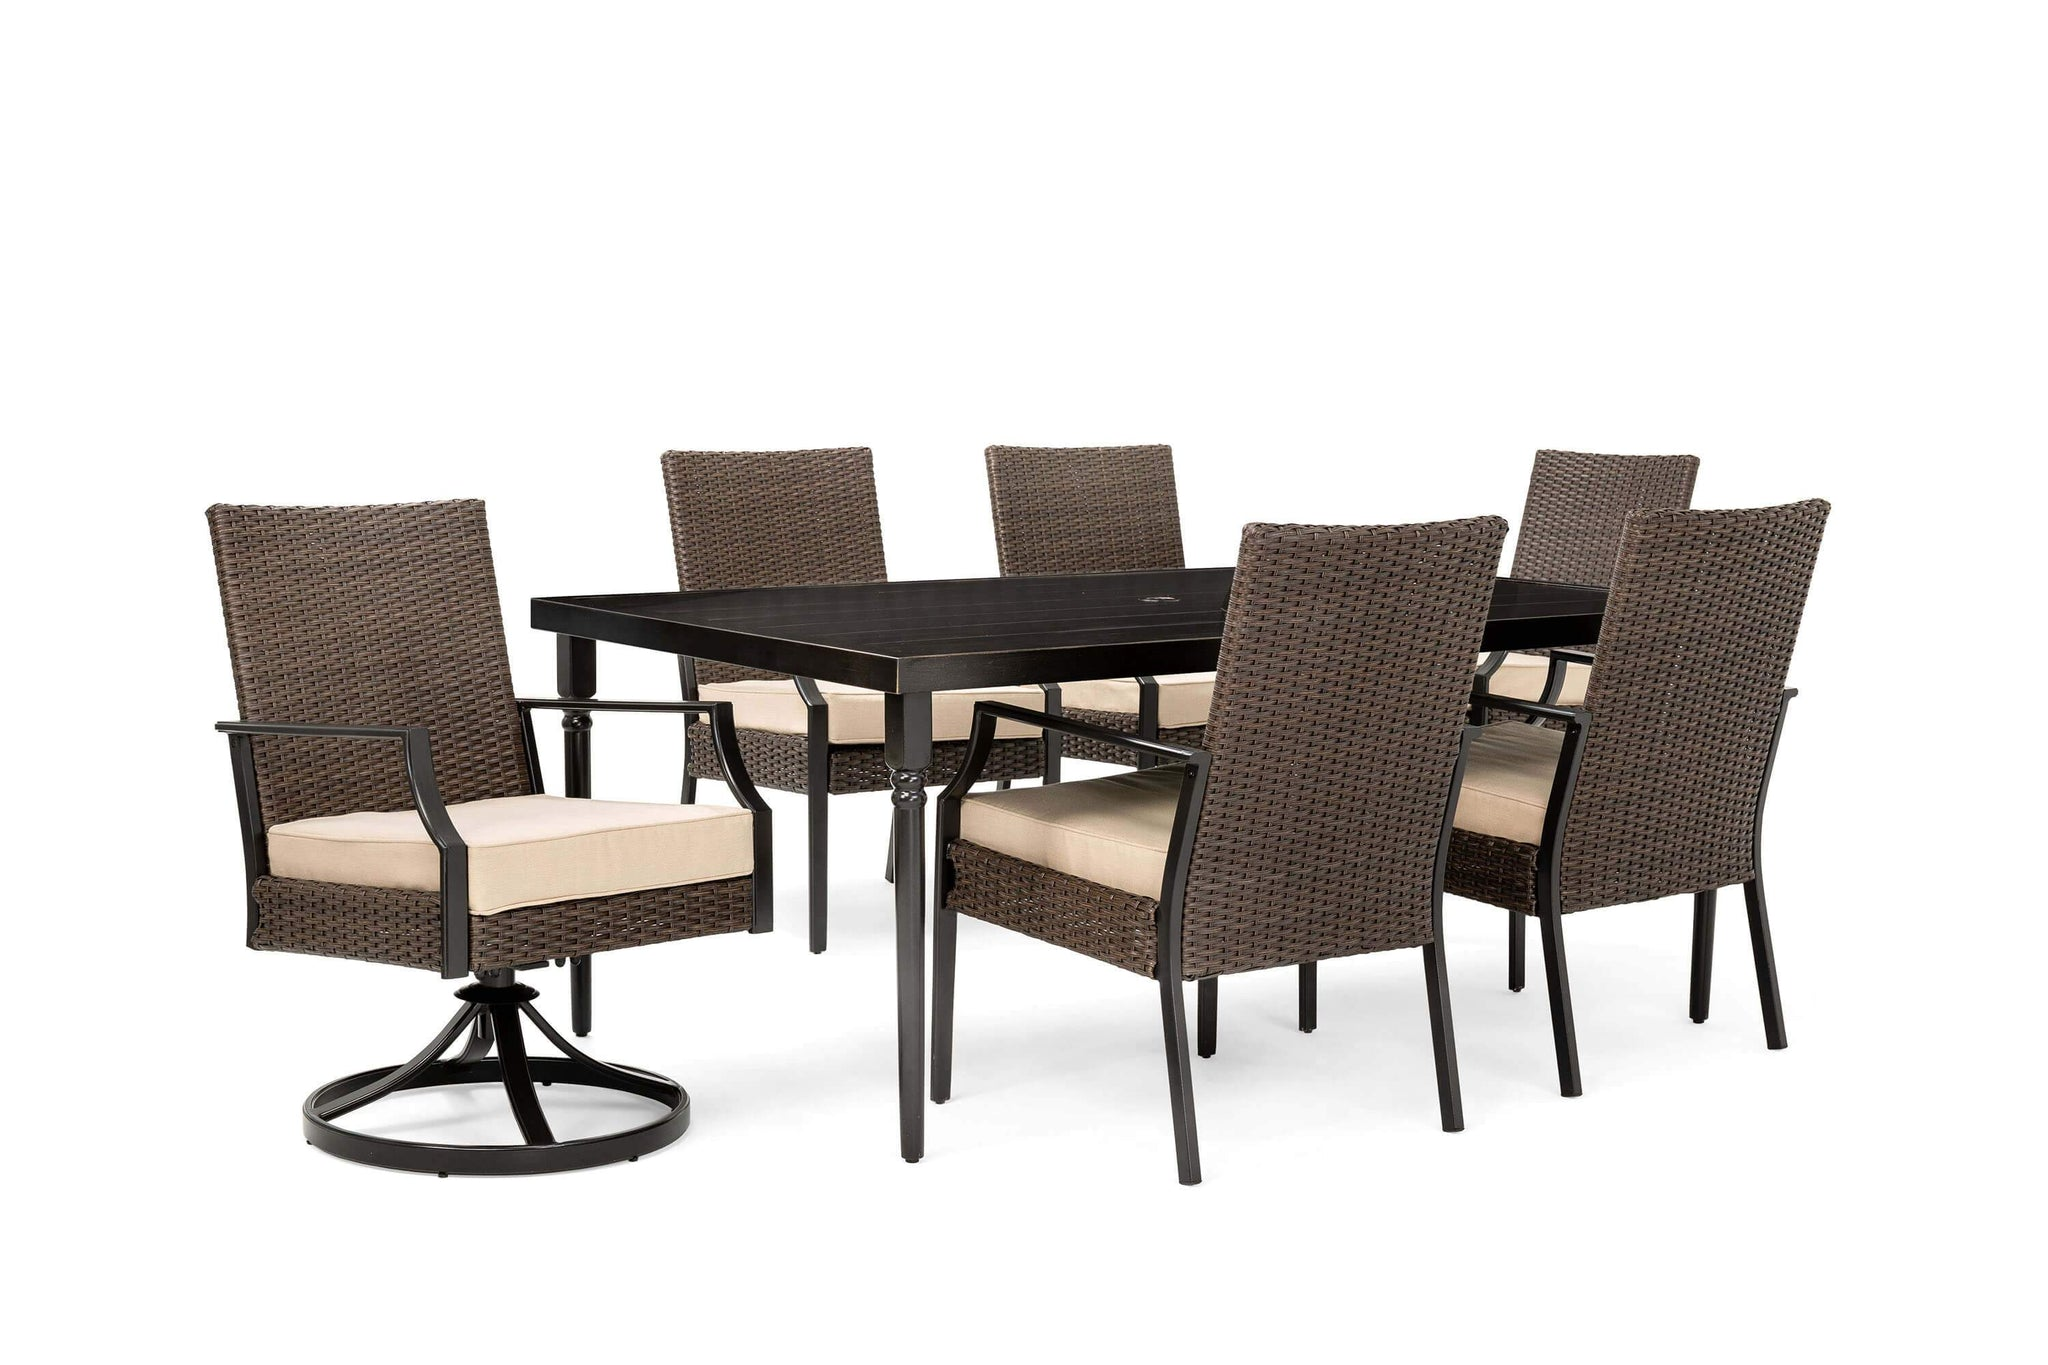 Amazing Addyson 7Pc Cushioned Dining Set Rectangular Table 4 Stationary Chairs 2 Swivel Chairs Evergreenethics Interior Chair Design Evergreenethicsorg